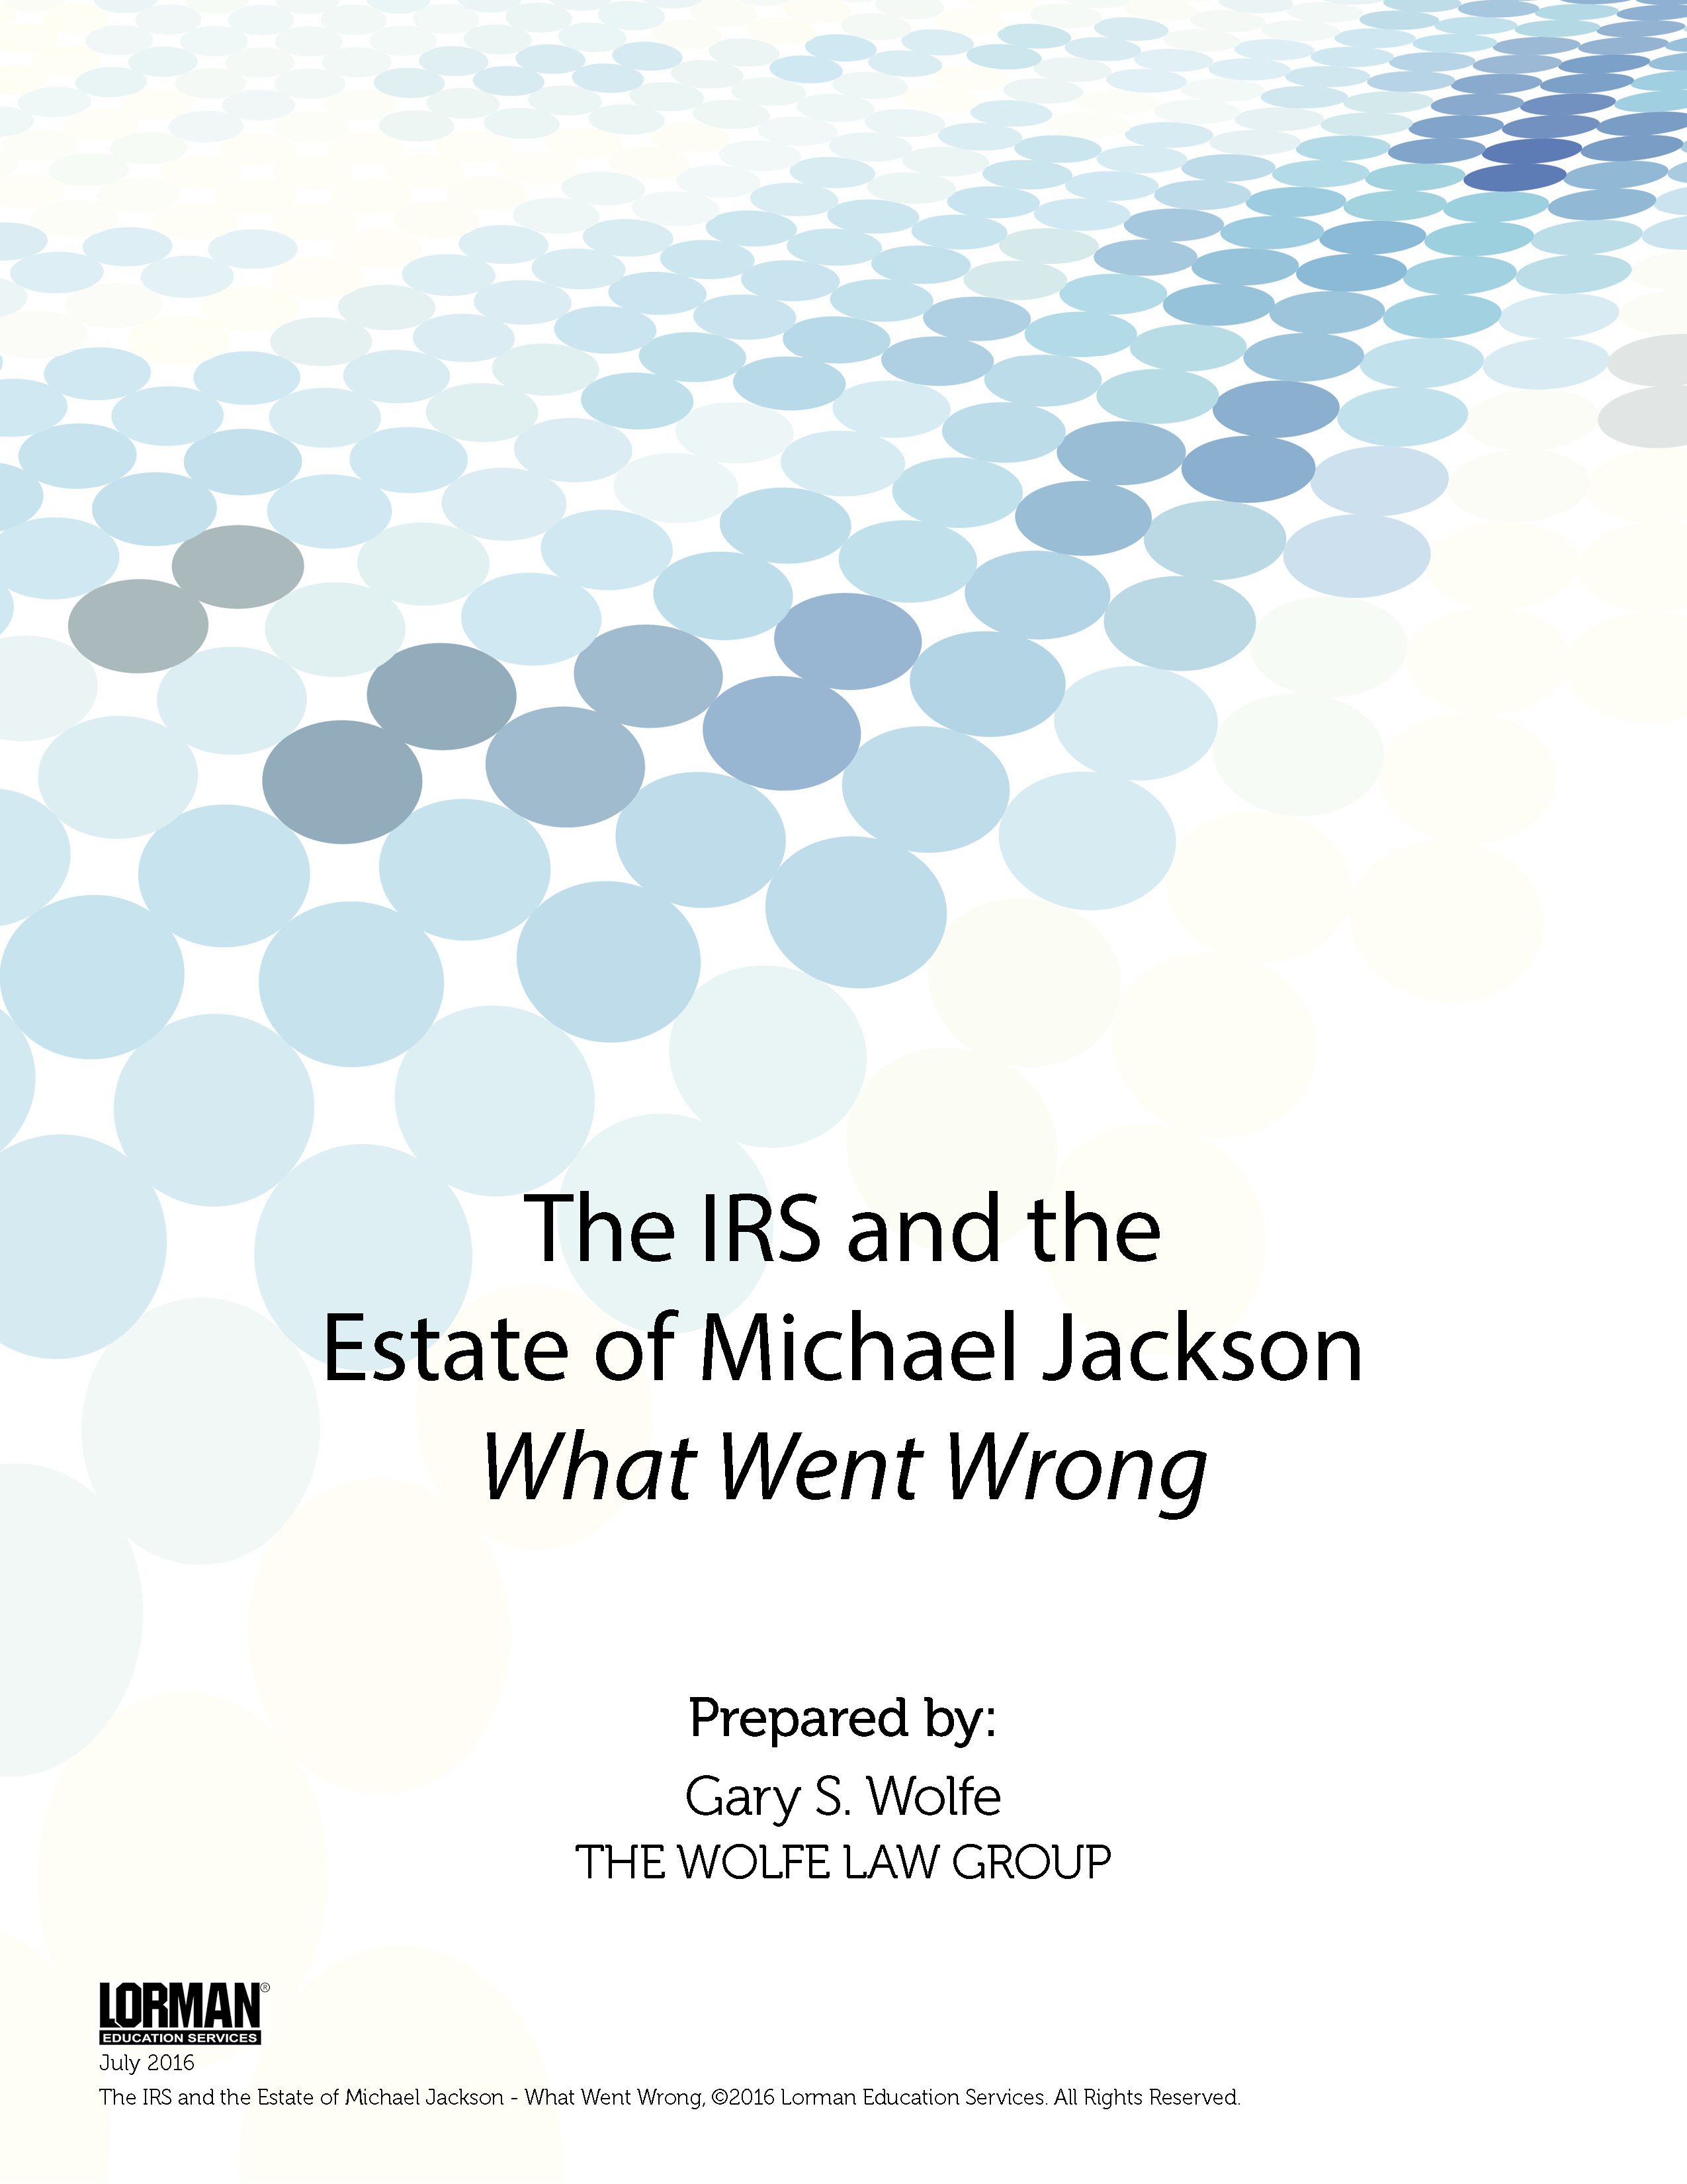 The IRS and the Estate of Michael Jackson - What Went Wrong